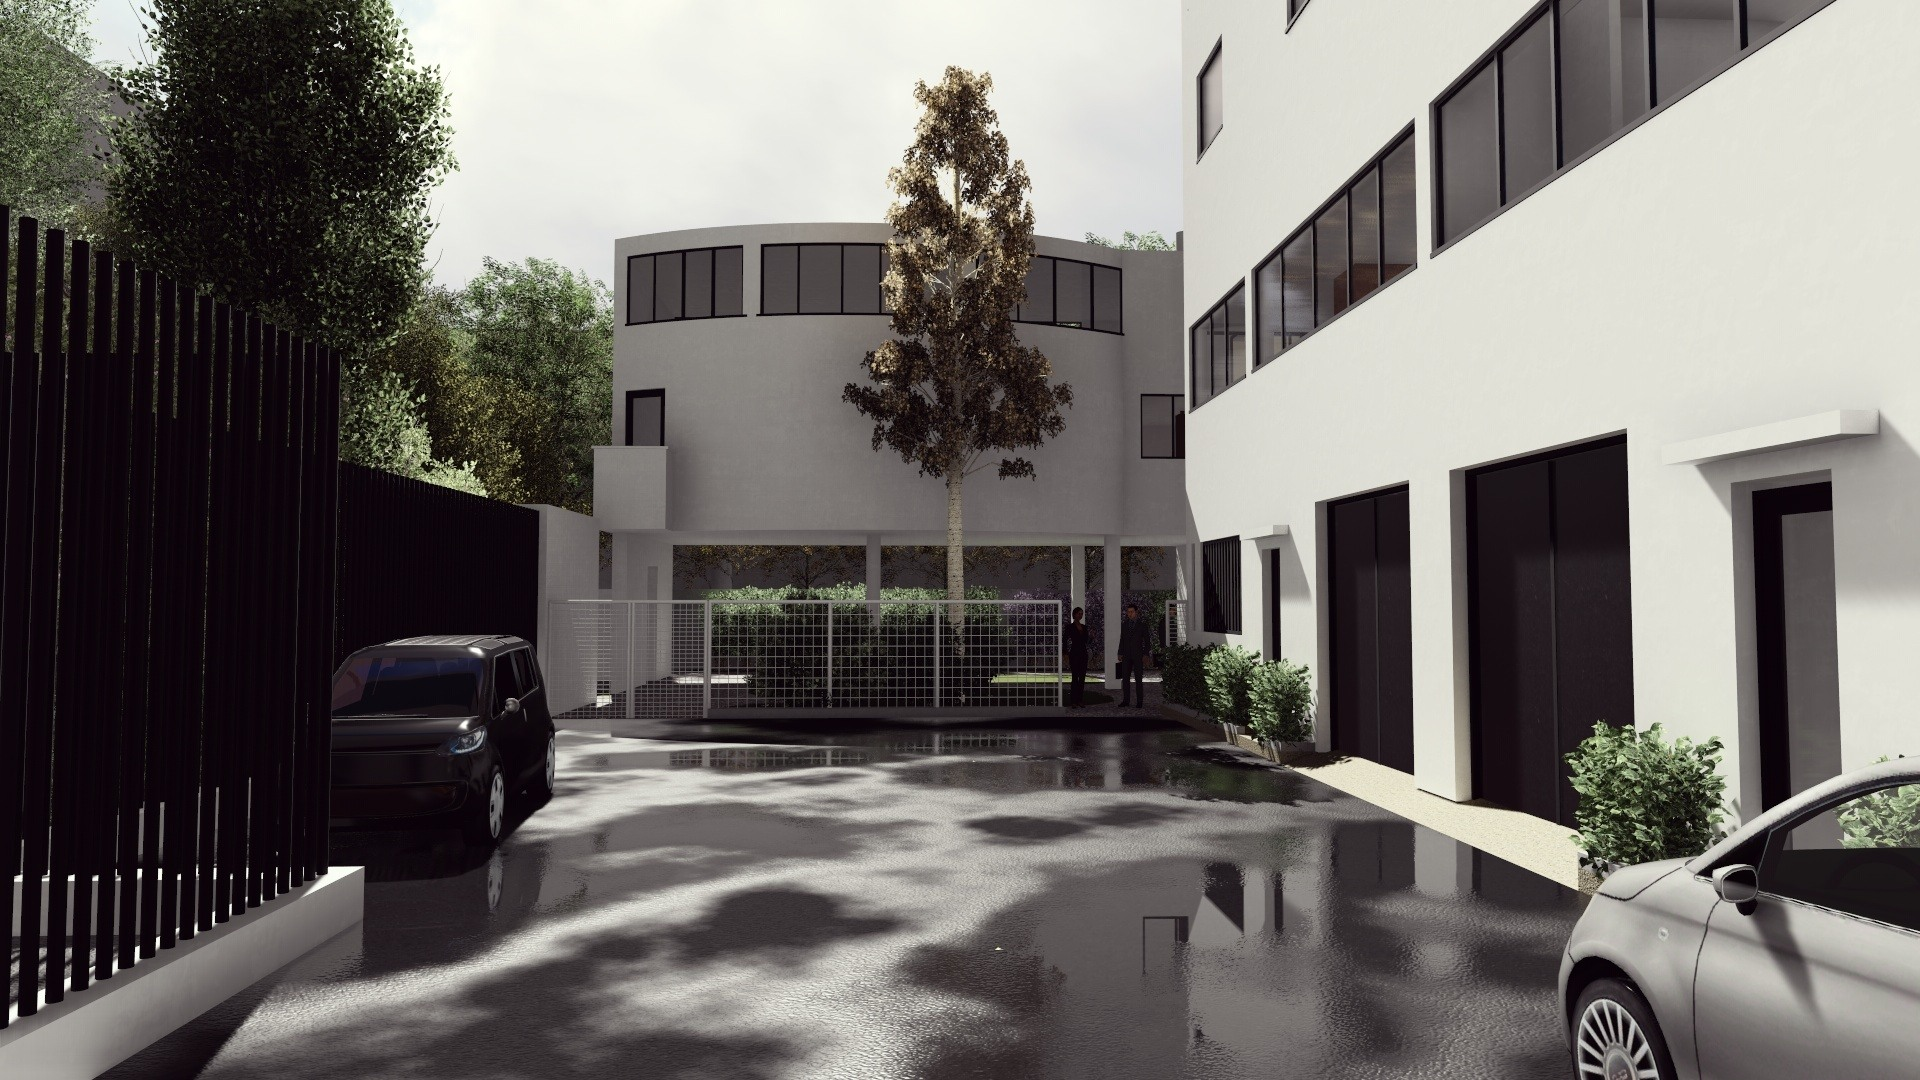 Casa La Roche Jeanneret Dwg Section For Autocad Designs Cad